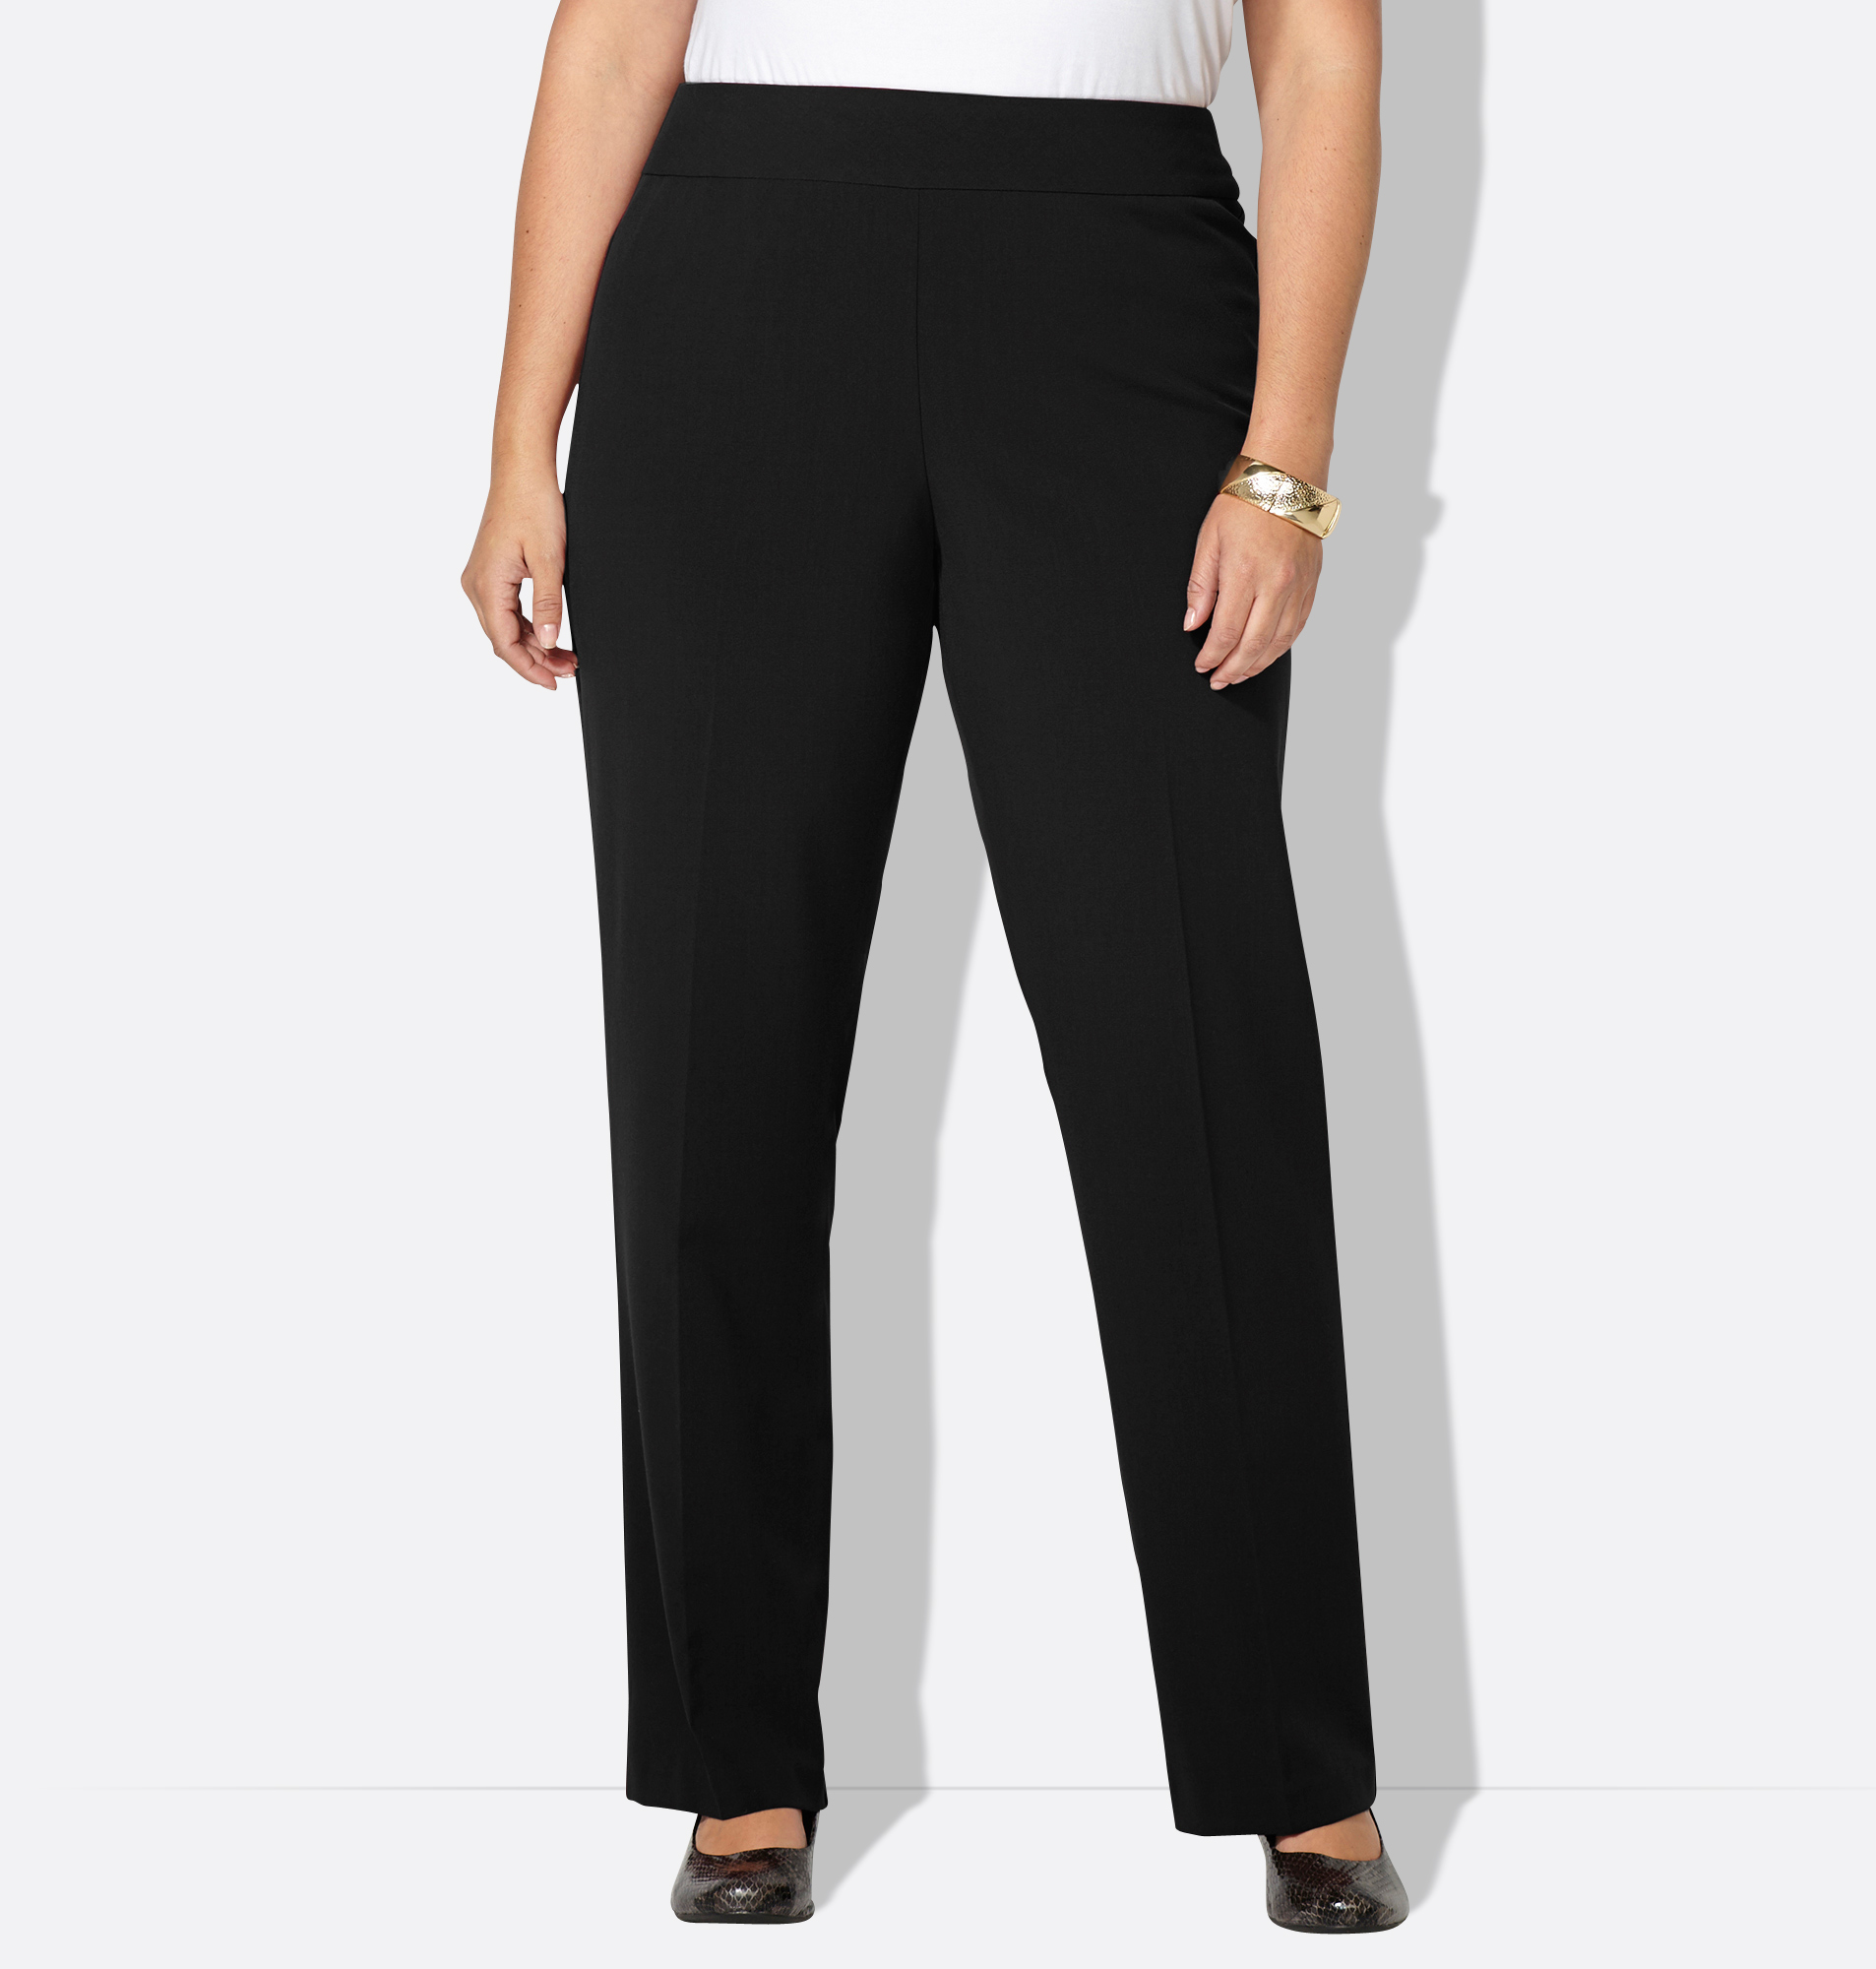 plus size pants with tummy control photo - 1